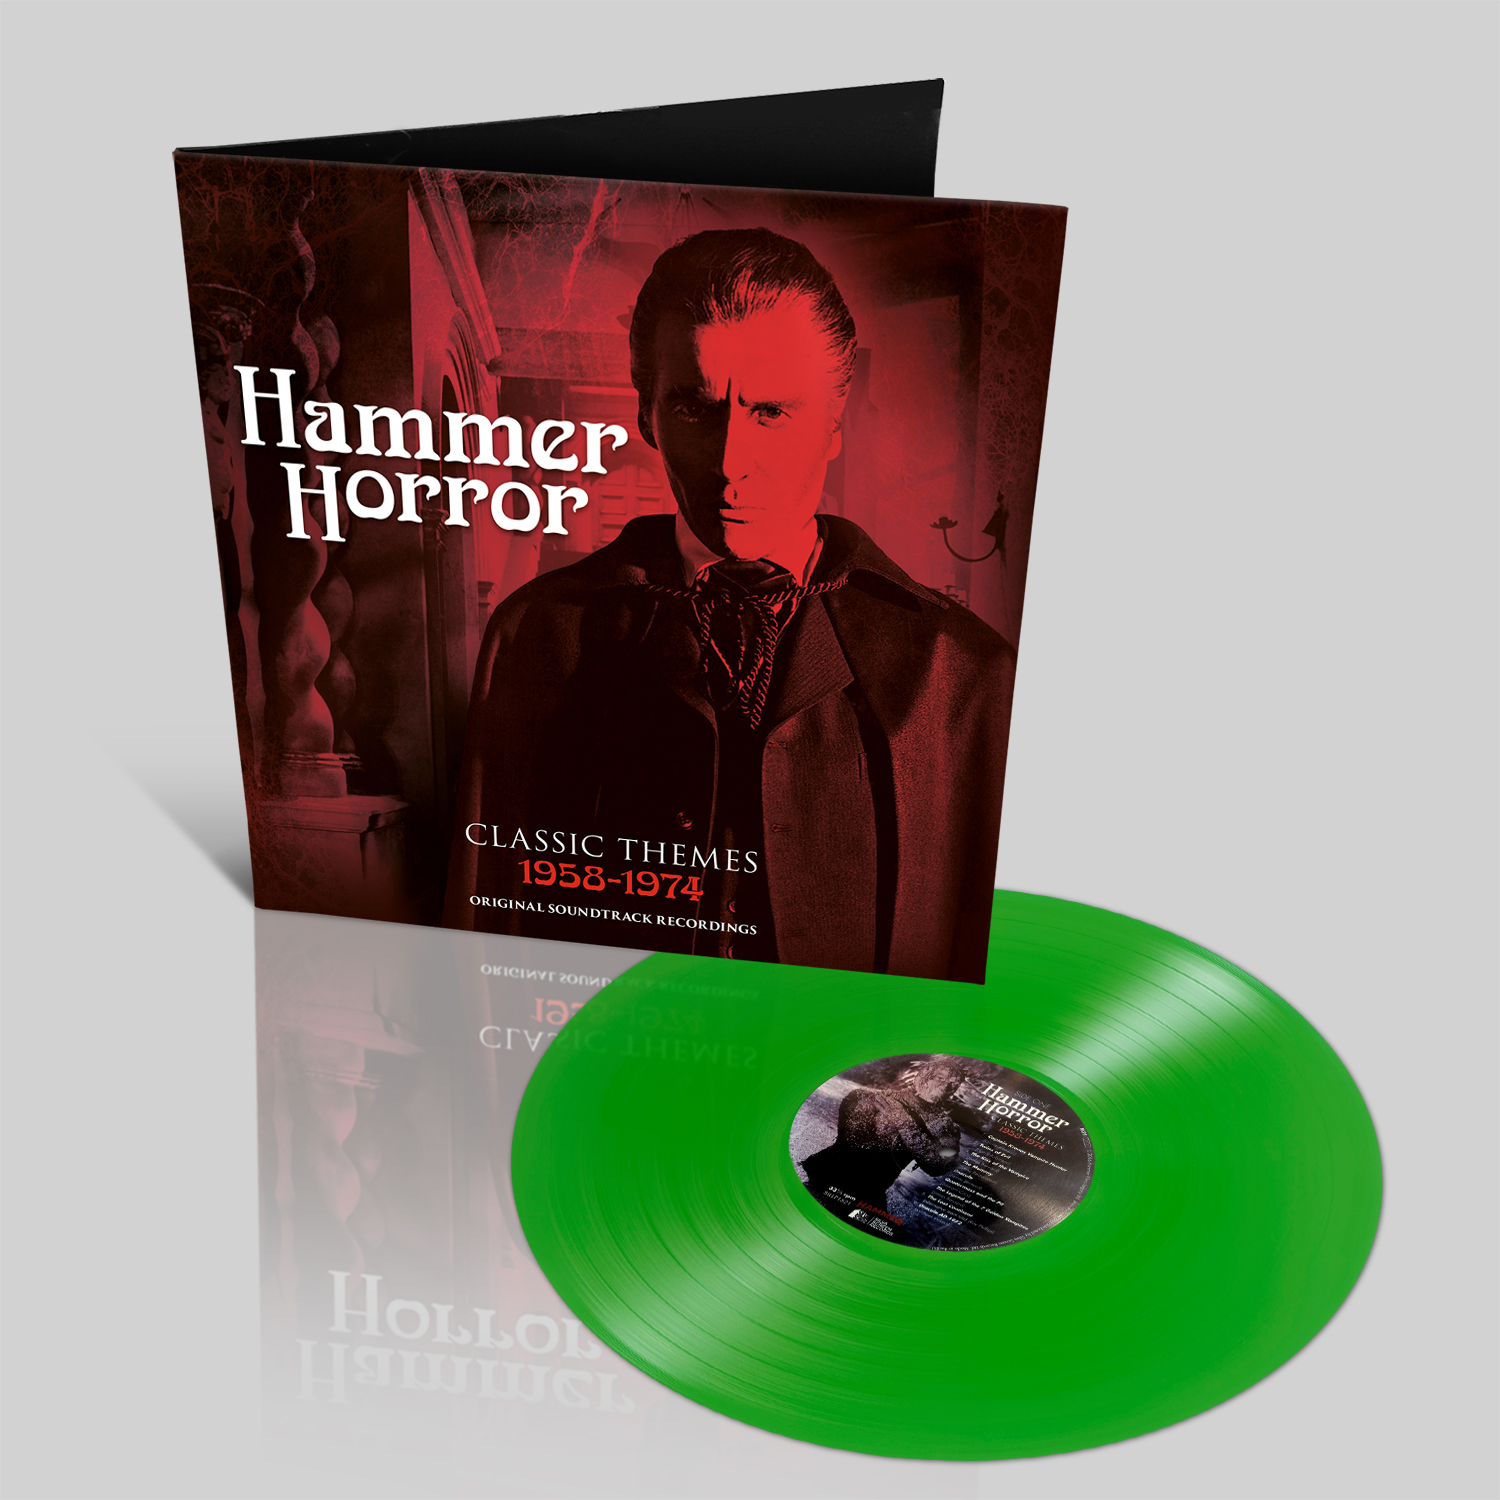 Hammer Horror Classic Themes